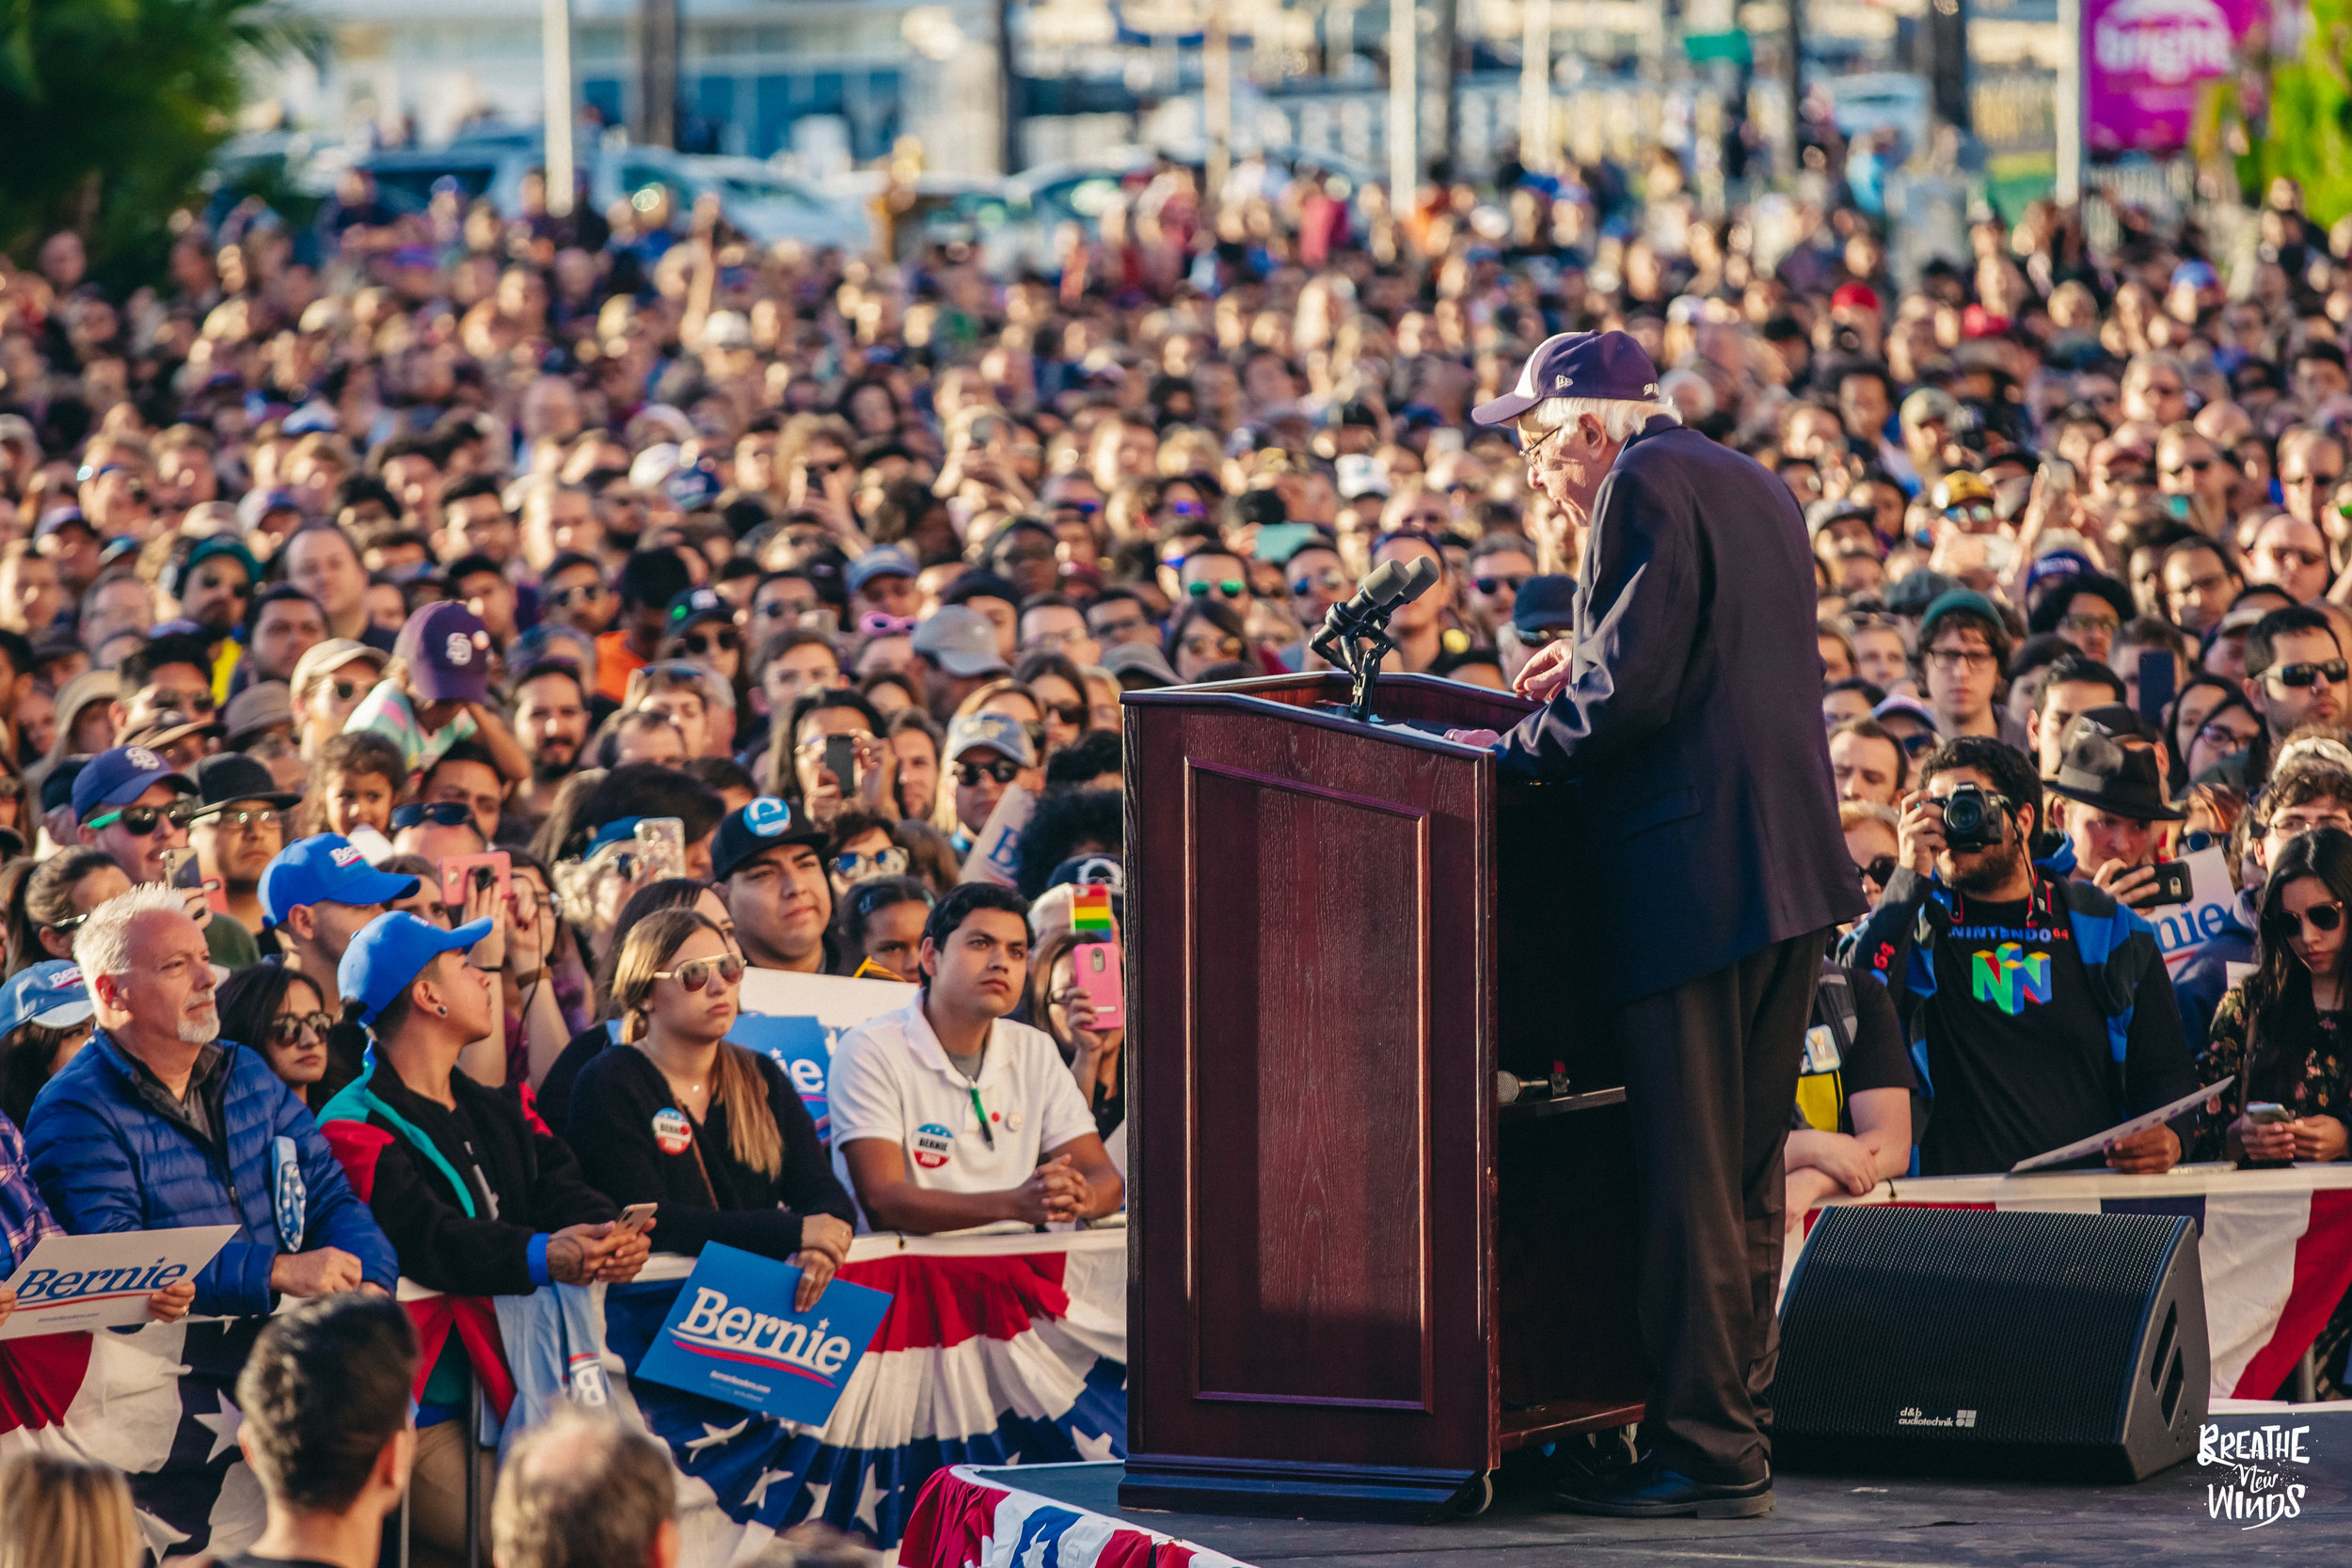 BernieInSD_22March2019-BernieAndFriends (64 of 78).jpg